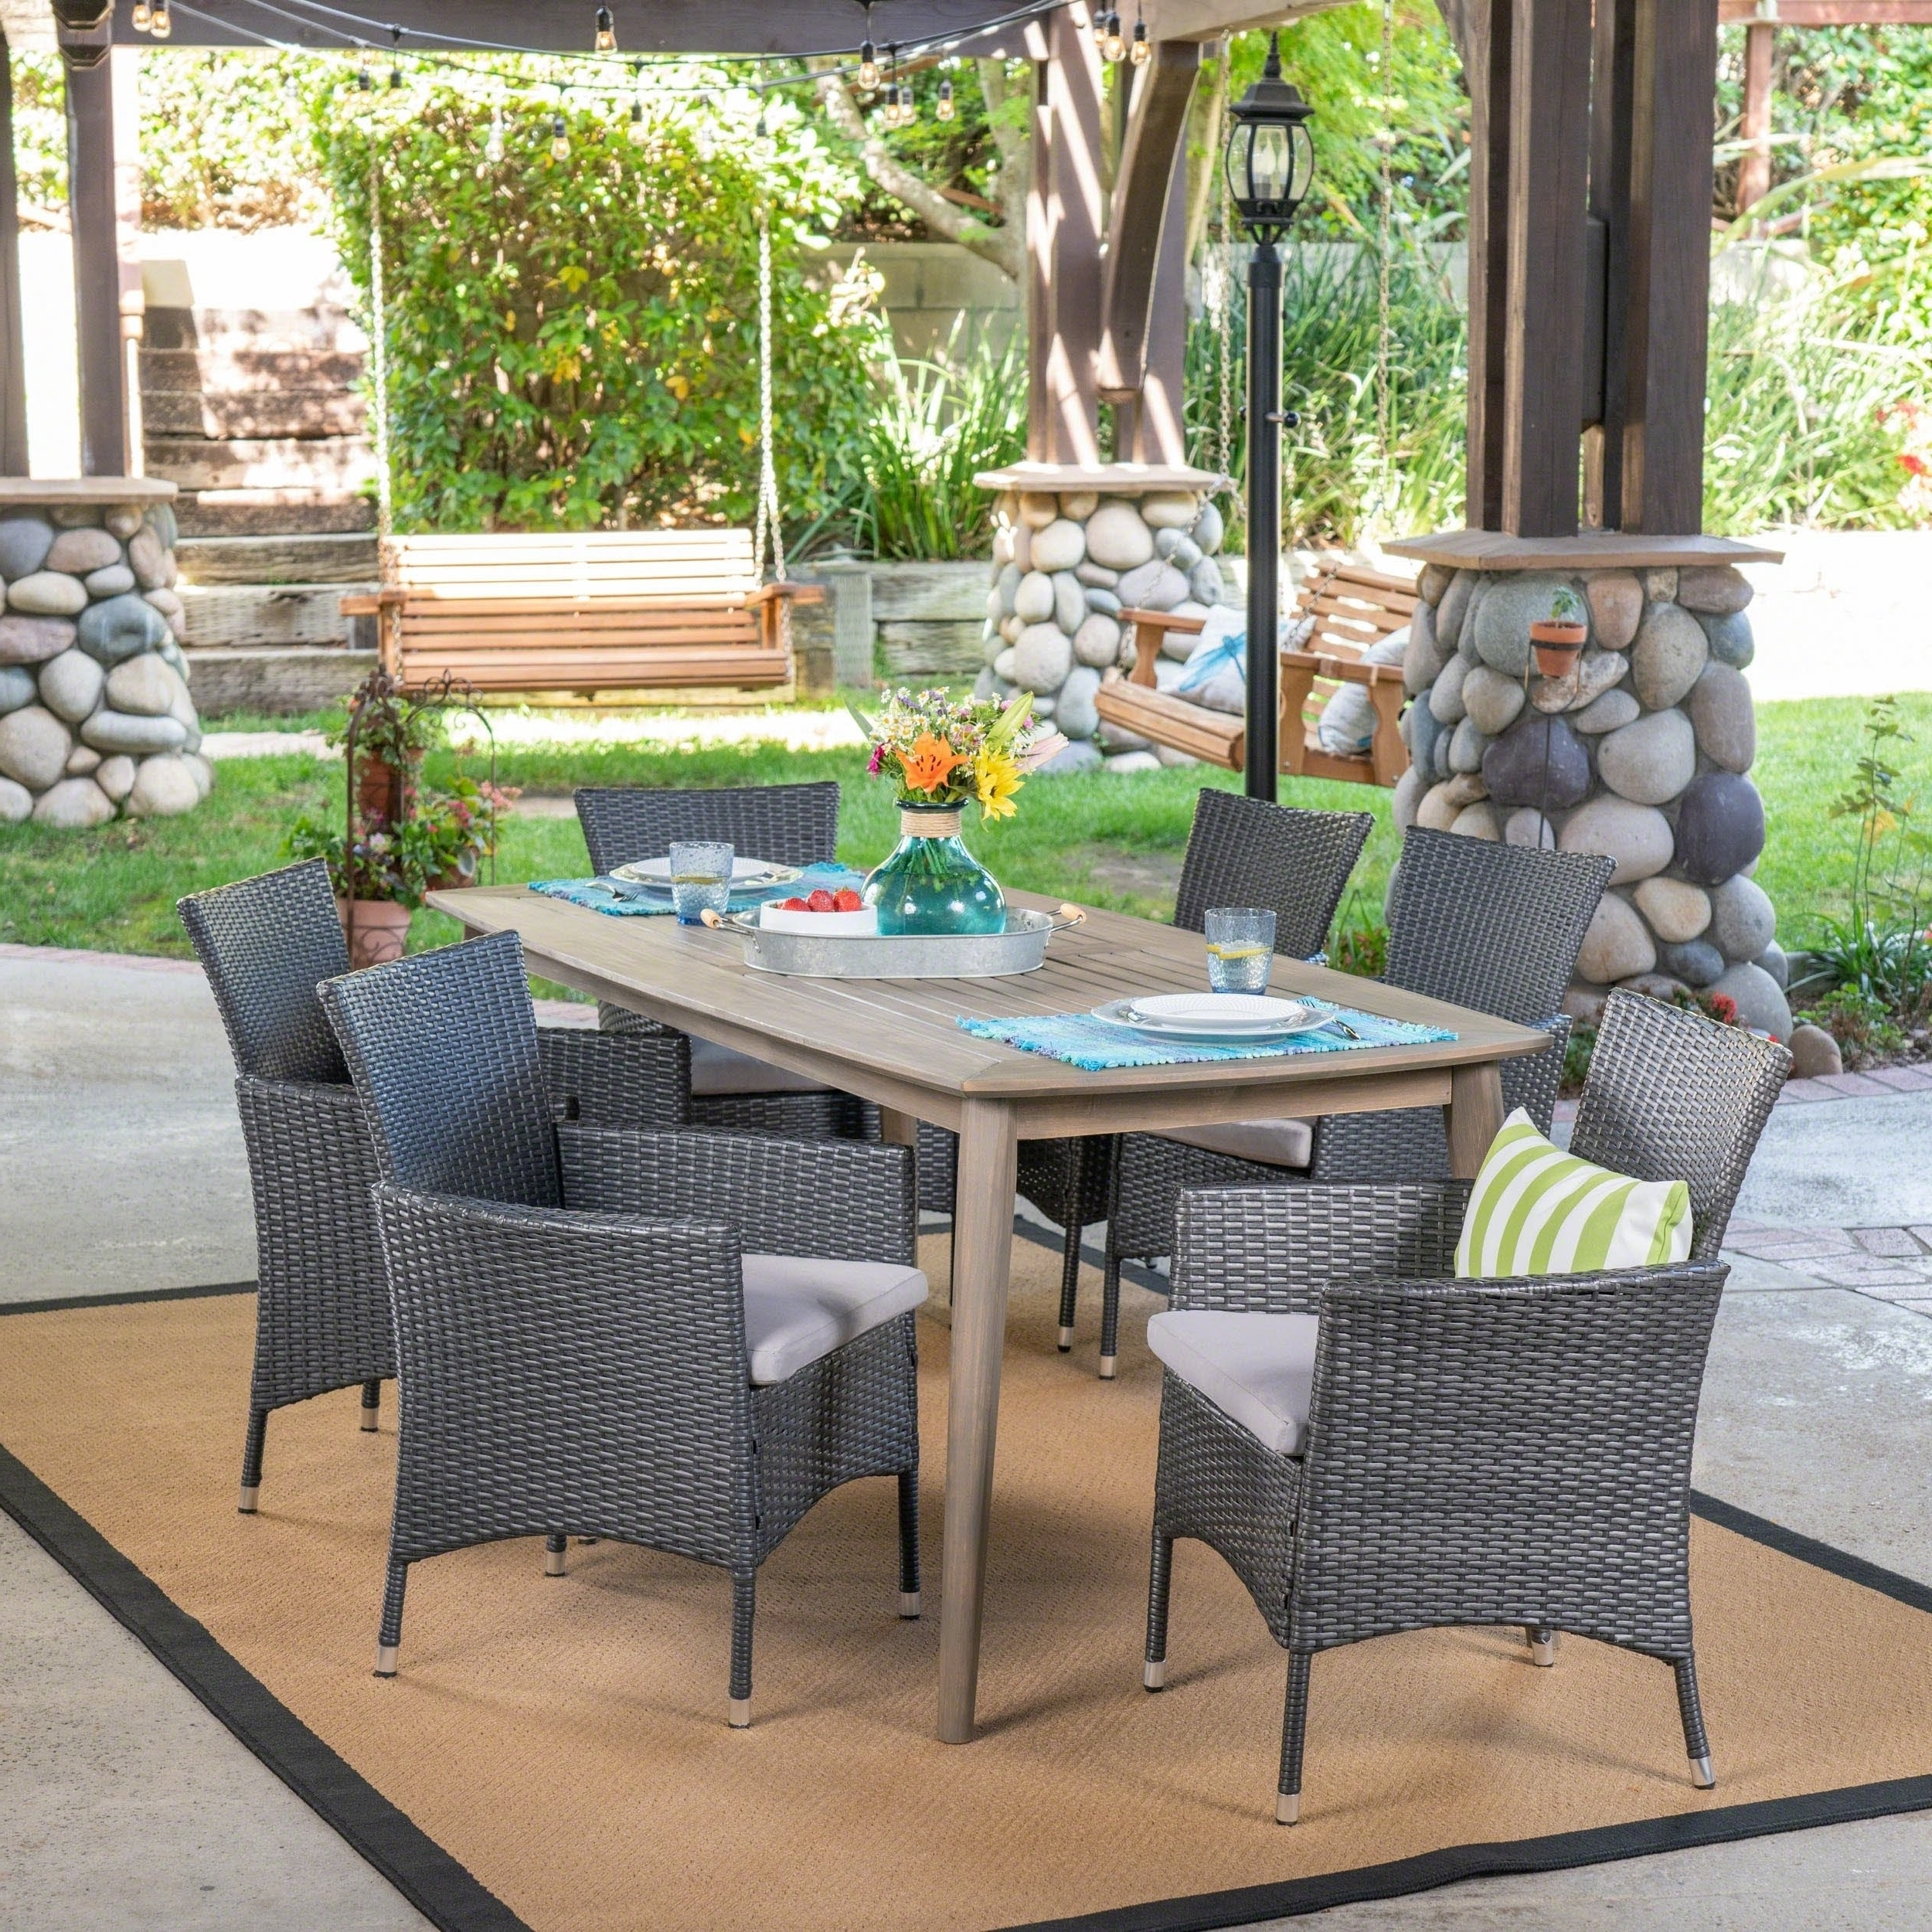 Shop Jaxon Outdoor 7 Piece Multibrown Pe Wicker Dining Set With In Well Known Jaxon Grey 7 Piece Rectangle Extension Dining Sets With Uph Chairs (View 14 of 25)